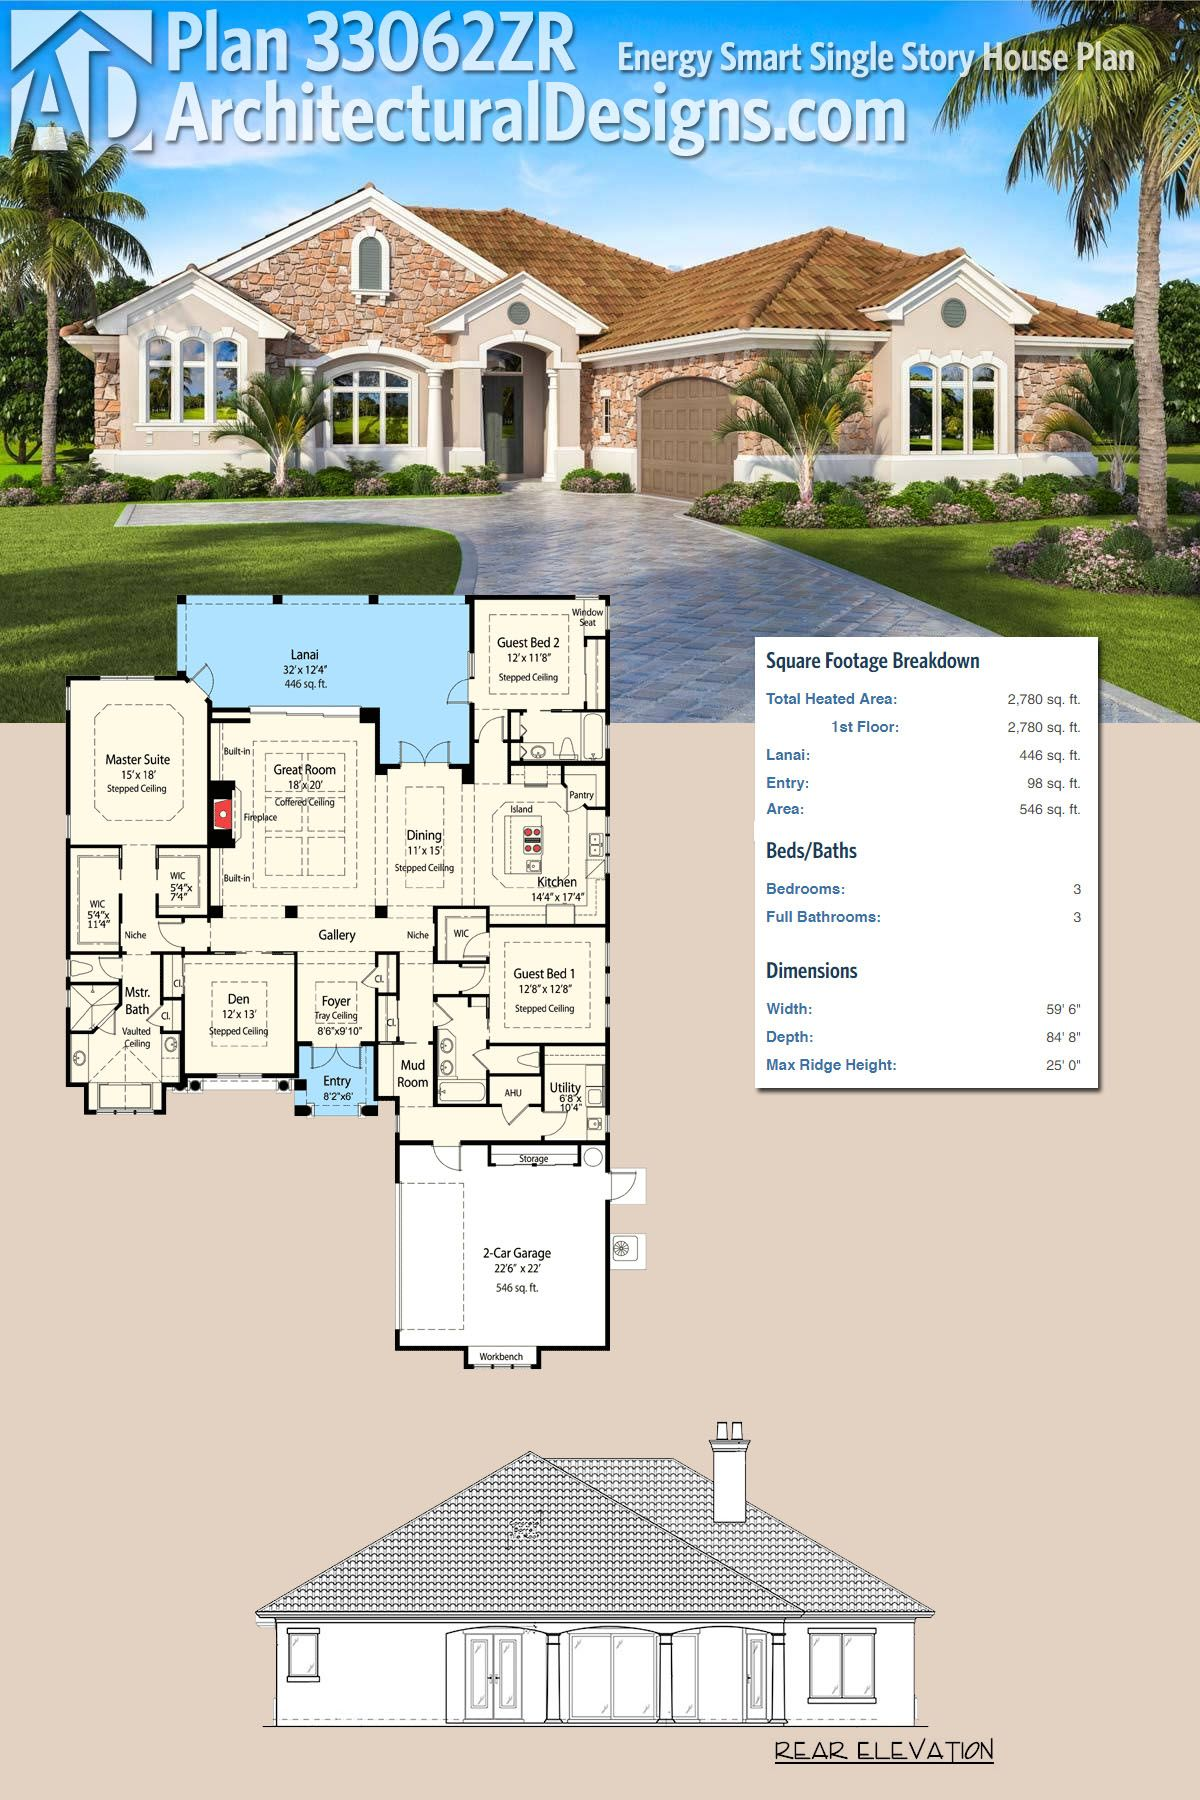 Plan 33062ZR: Energy Smart Single Story House Plan | Architectural ...